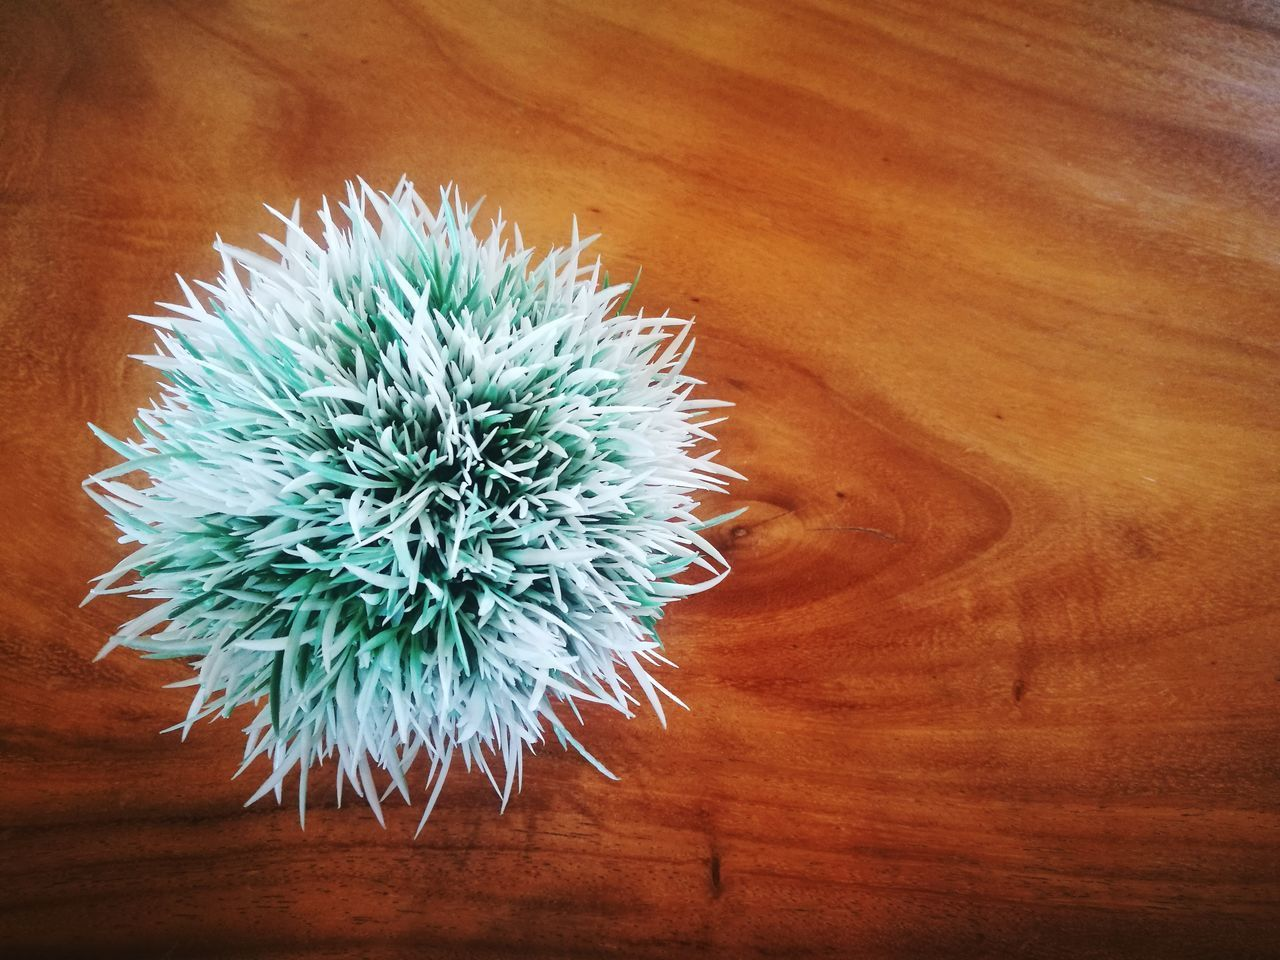 plant, no people, close-up, beauty in nature, growth, table, wood - material, freshness, flower, flowering plant, indoors, high angle view, nature, succulent plant, cactus, flower head, directly above, vulnerability, day, fragility